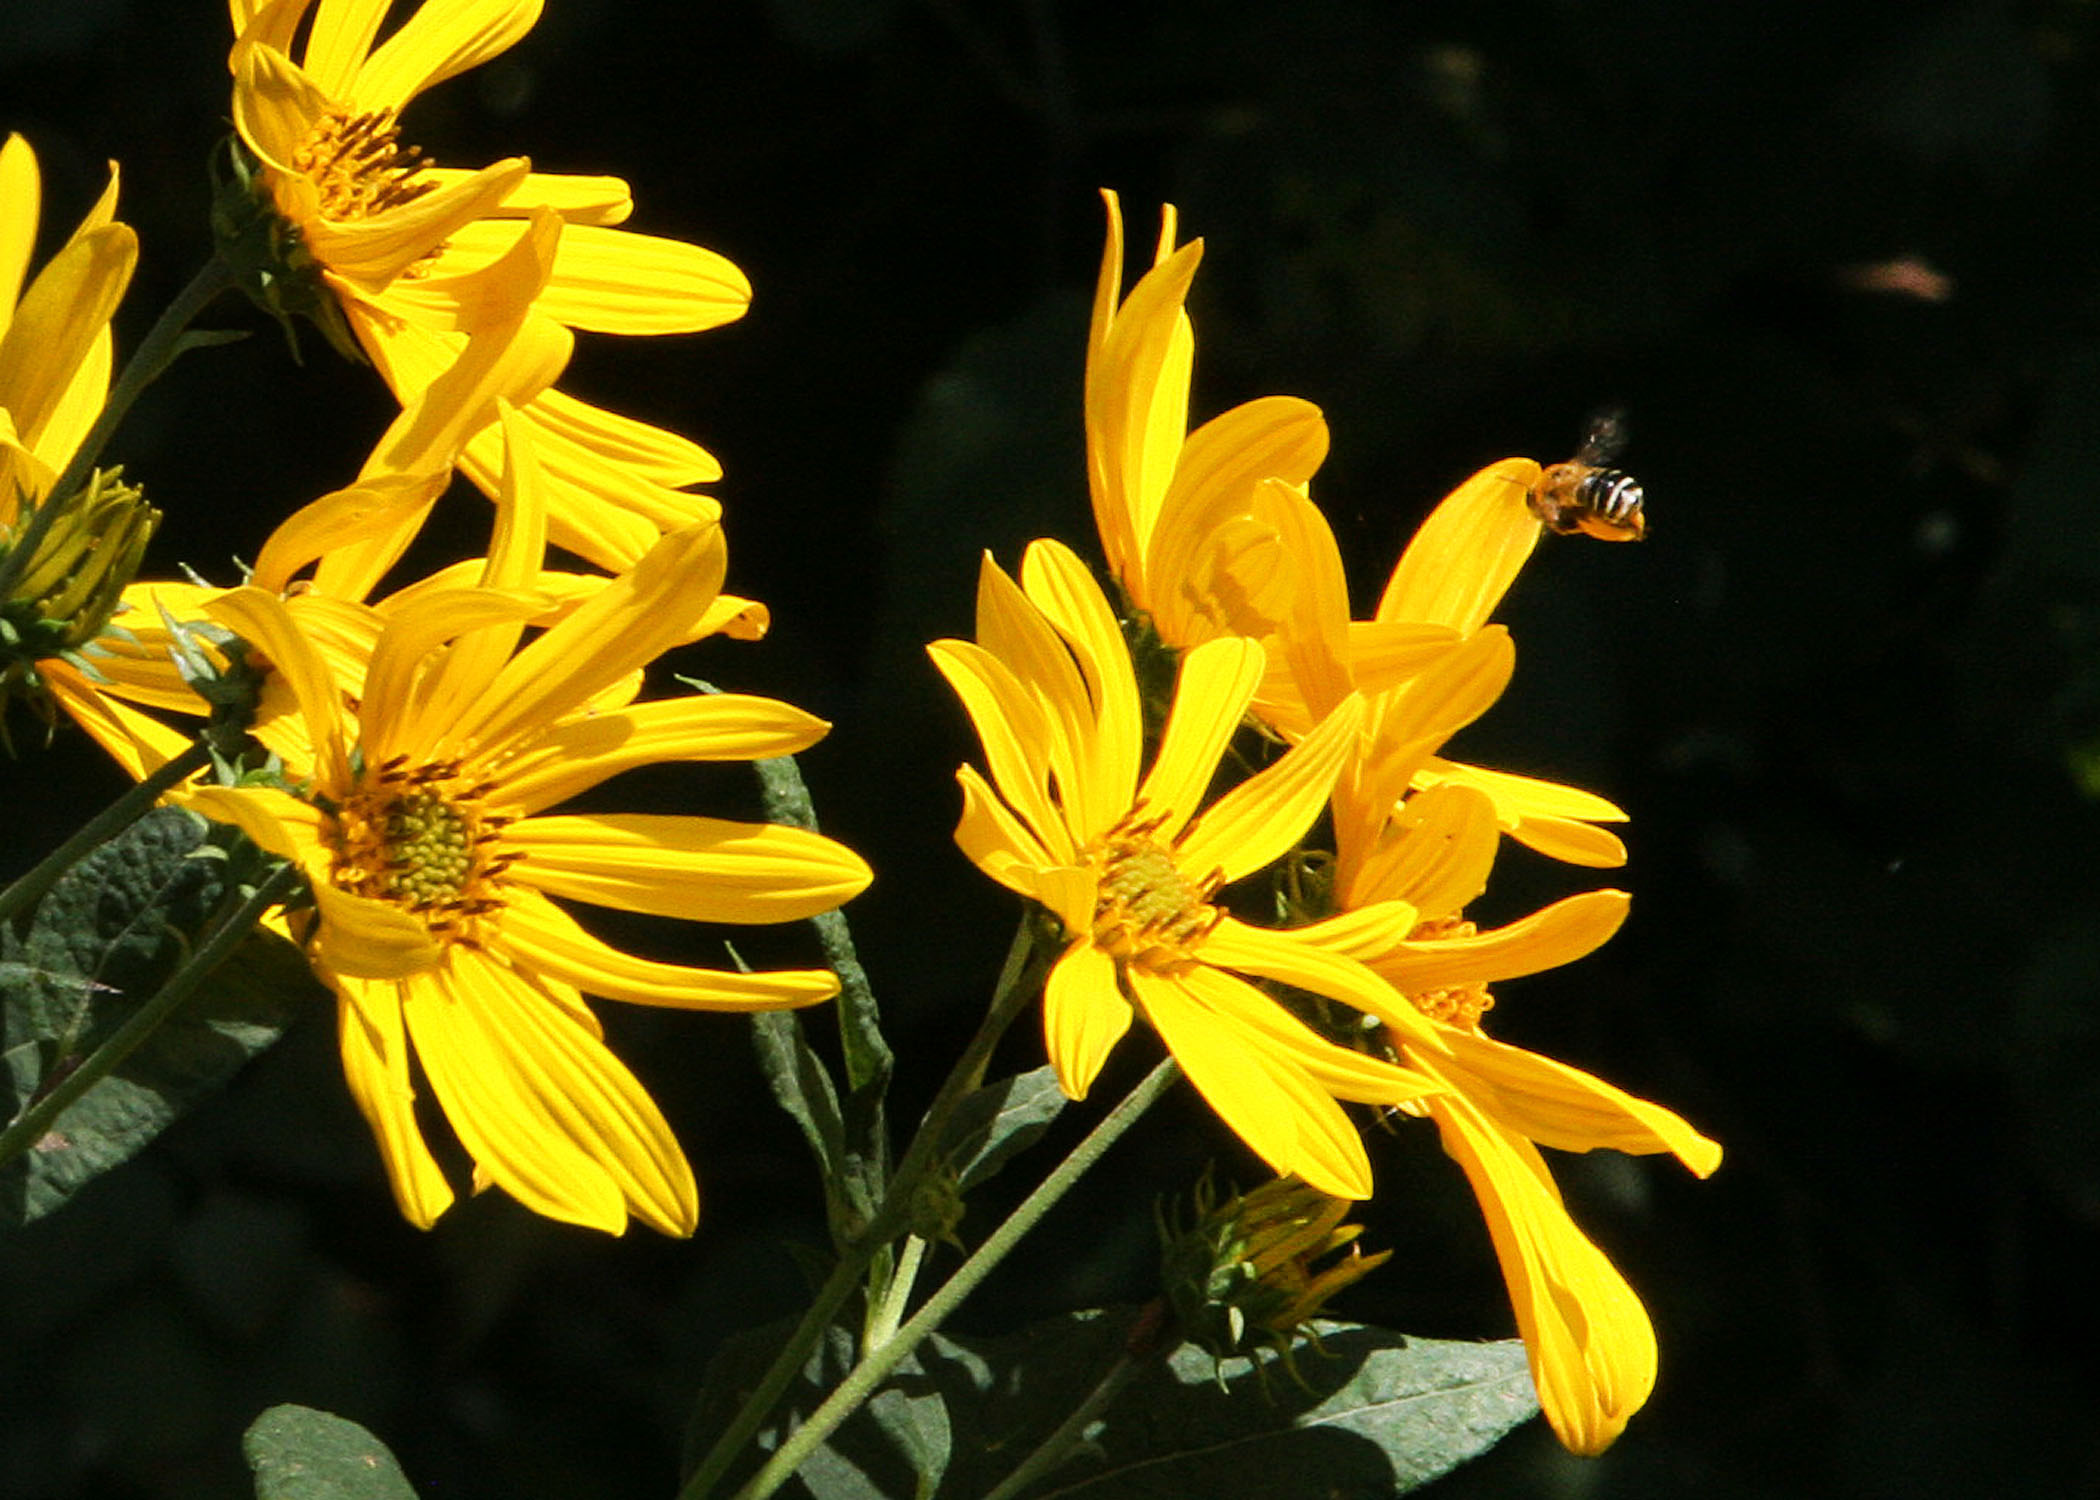 According to information from the USDA's Natural Resources Conservation Service, three-fourths of the world's flowering plants and about 35 percent of the world's food crops depend on animal pollinators to reproduce.